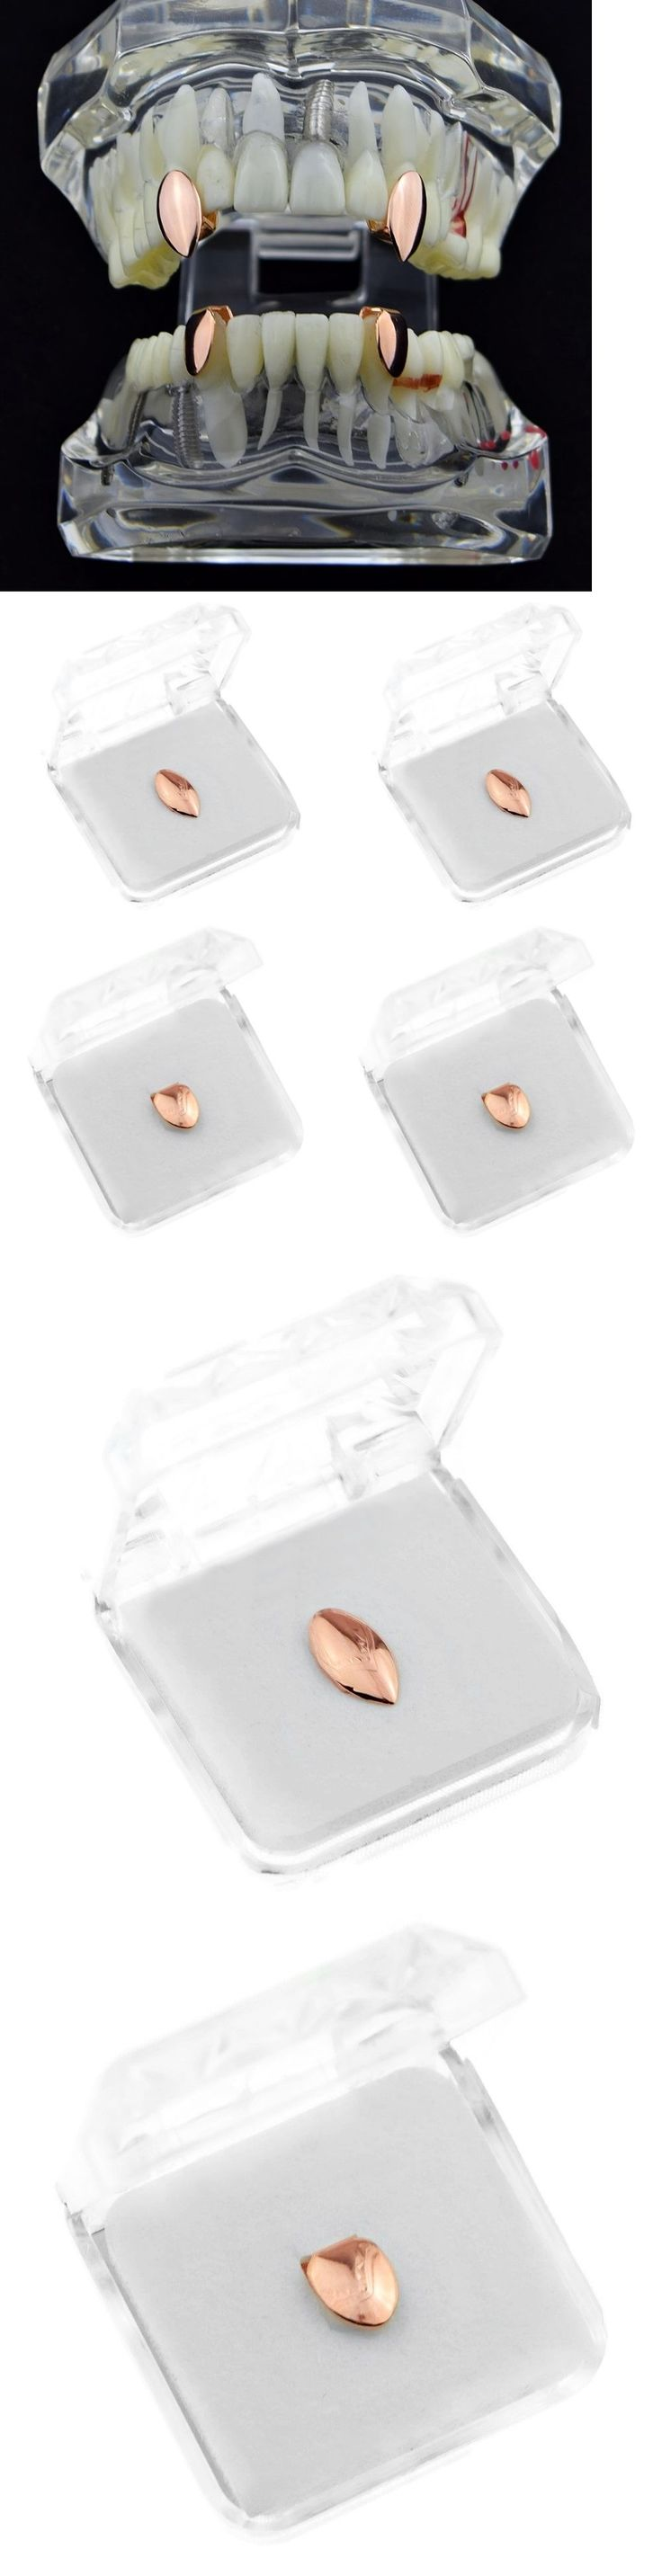 Grillz Dental Grills 152808: Vampire Fang Set Top Fangs And Two Bottom Caps 14K Rose Gold Plated Dracula Teeth BUY IT NOW ONLY: $39.95